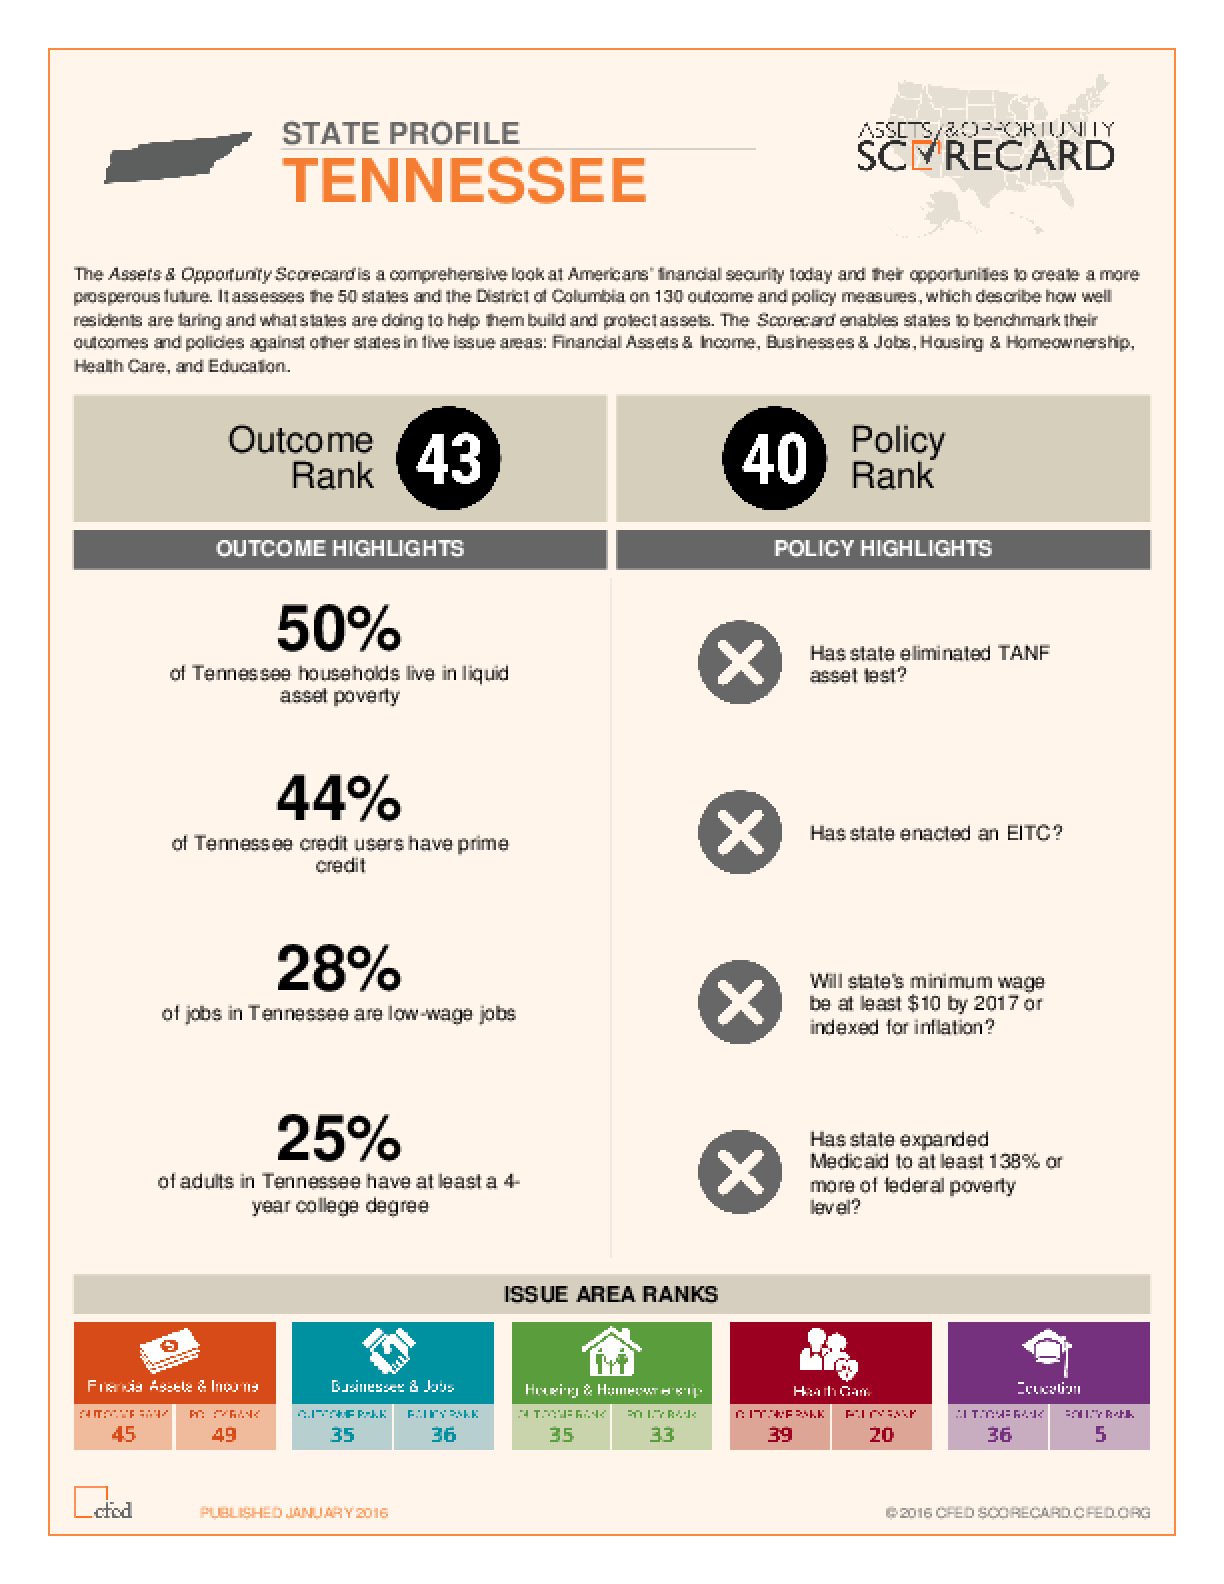 State Profile Tennessee: Assets and Opportunity Scorecard